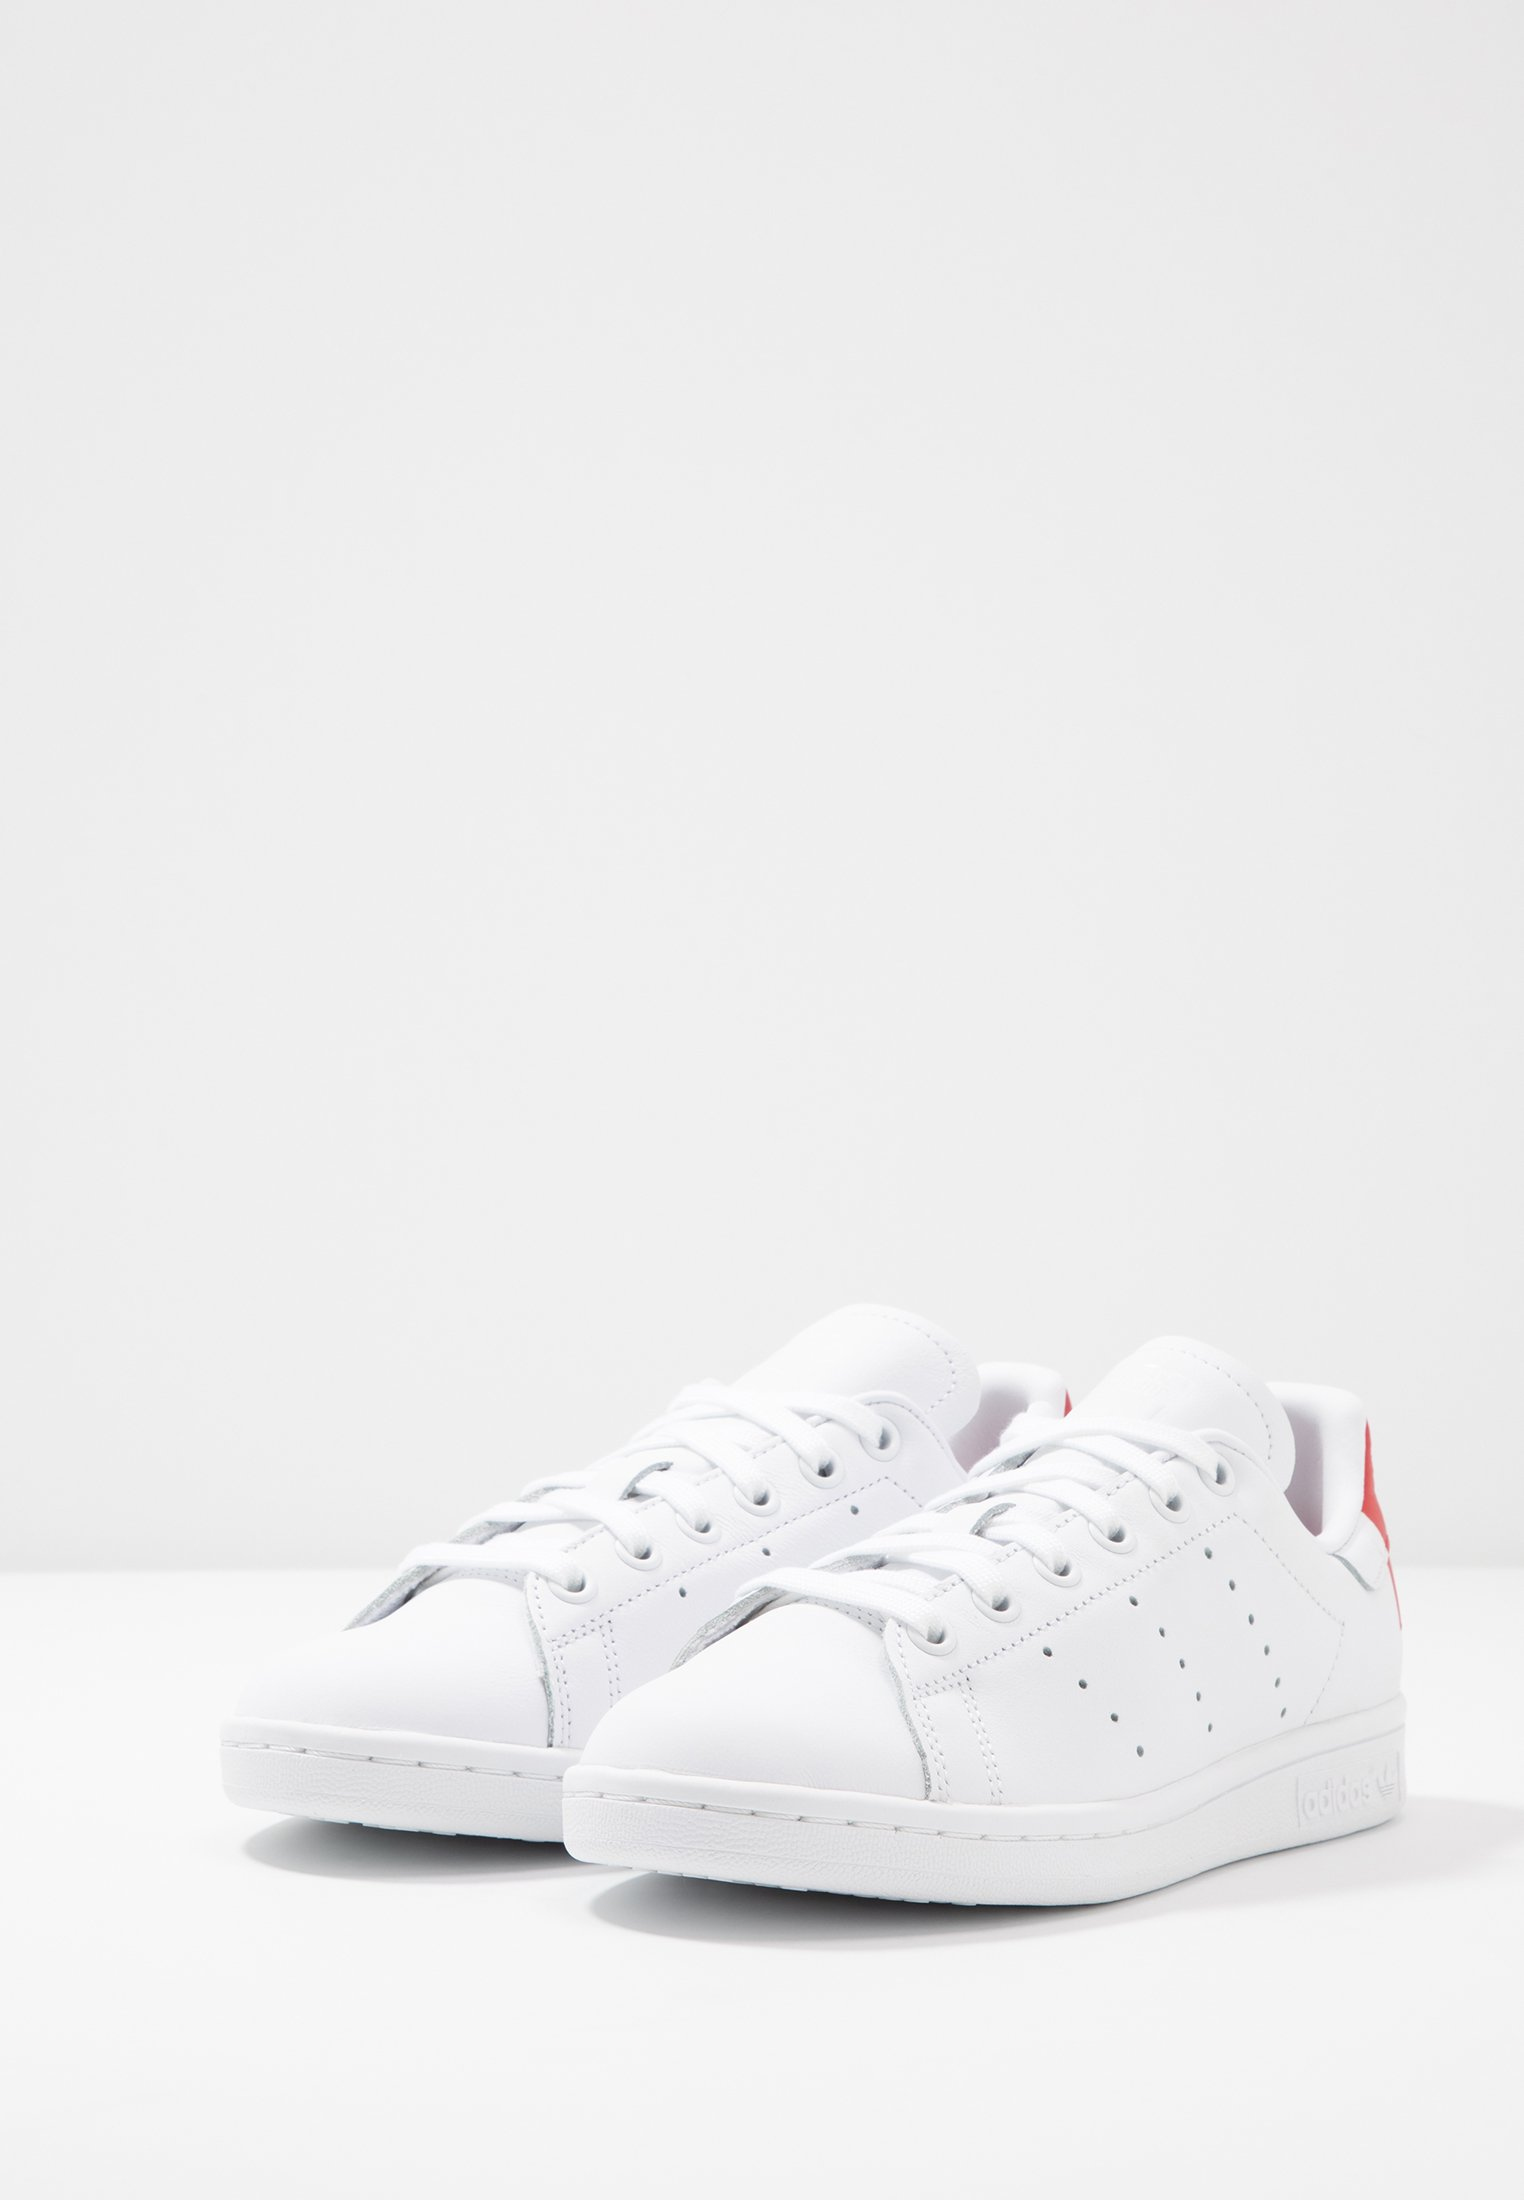 STAN SMITH basses Originals adidas white scarlet HEEL PATCH footwear SHOESBaskets xBWQrCedo